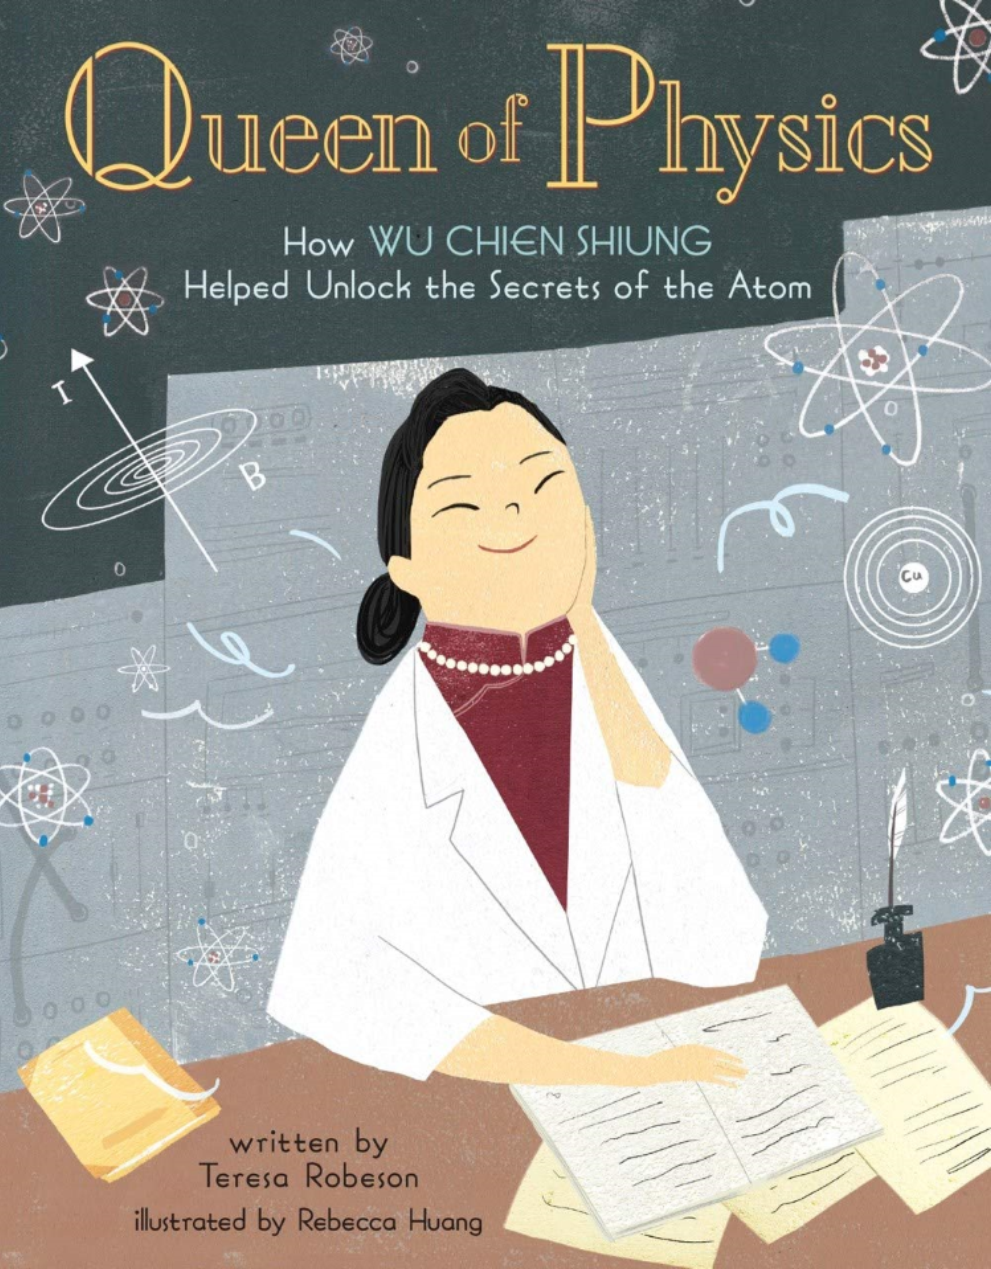 Queen of Physics by Teresa Roberson